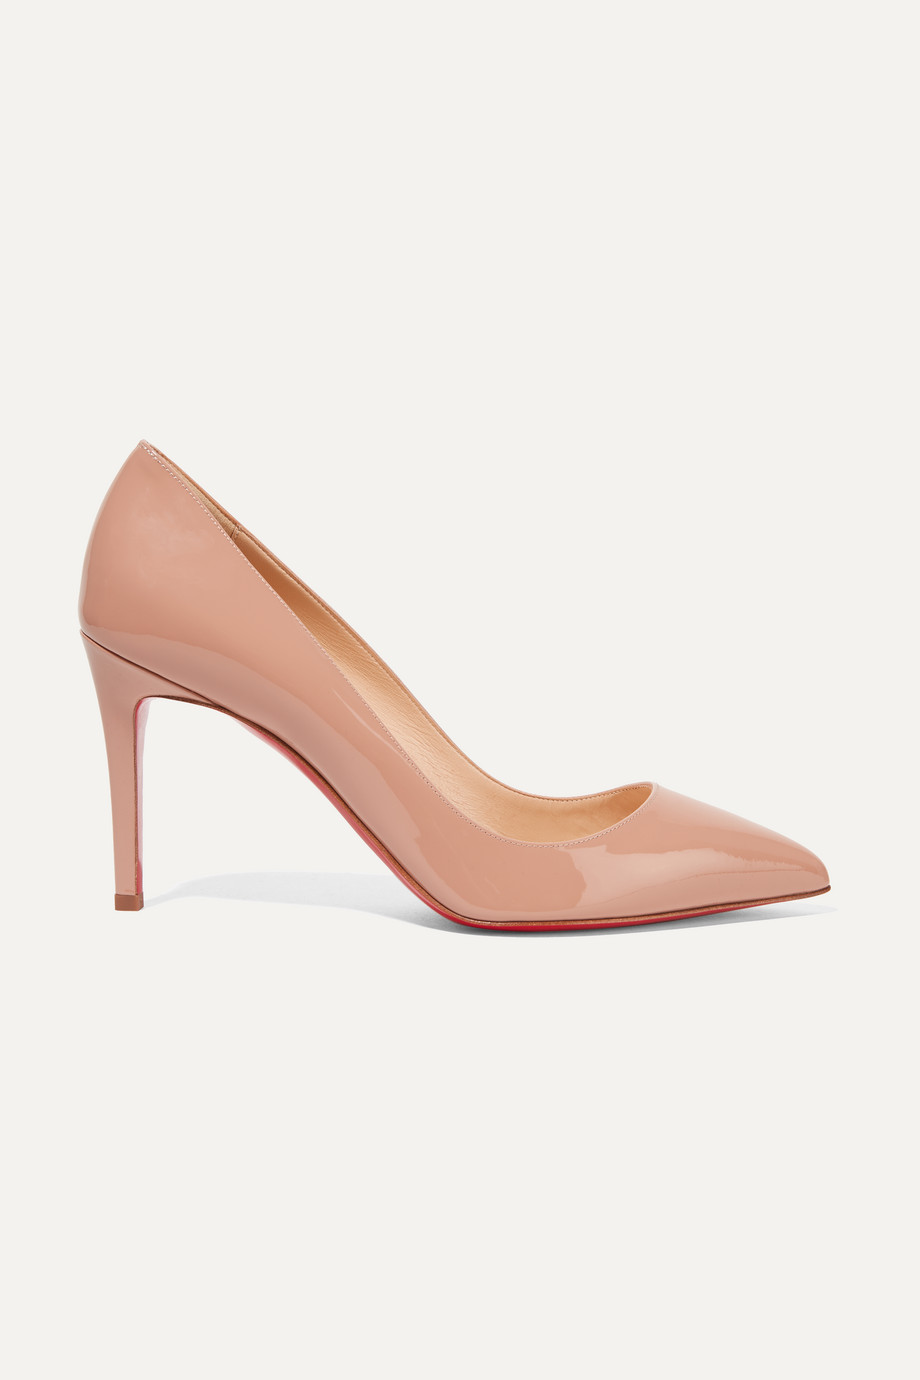 Christian Louboutin Pigalle 85 patent-leather pumps